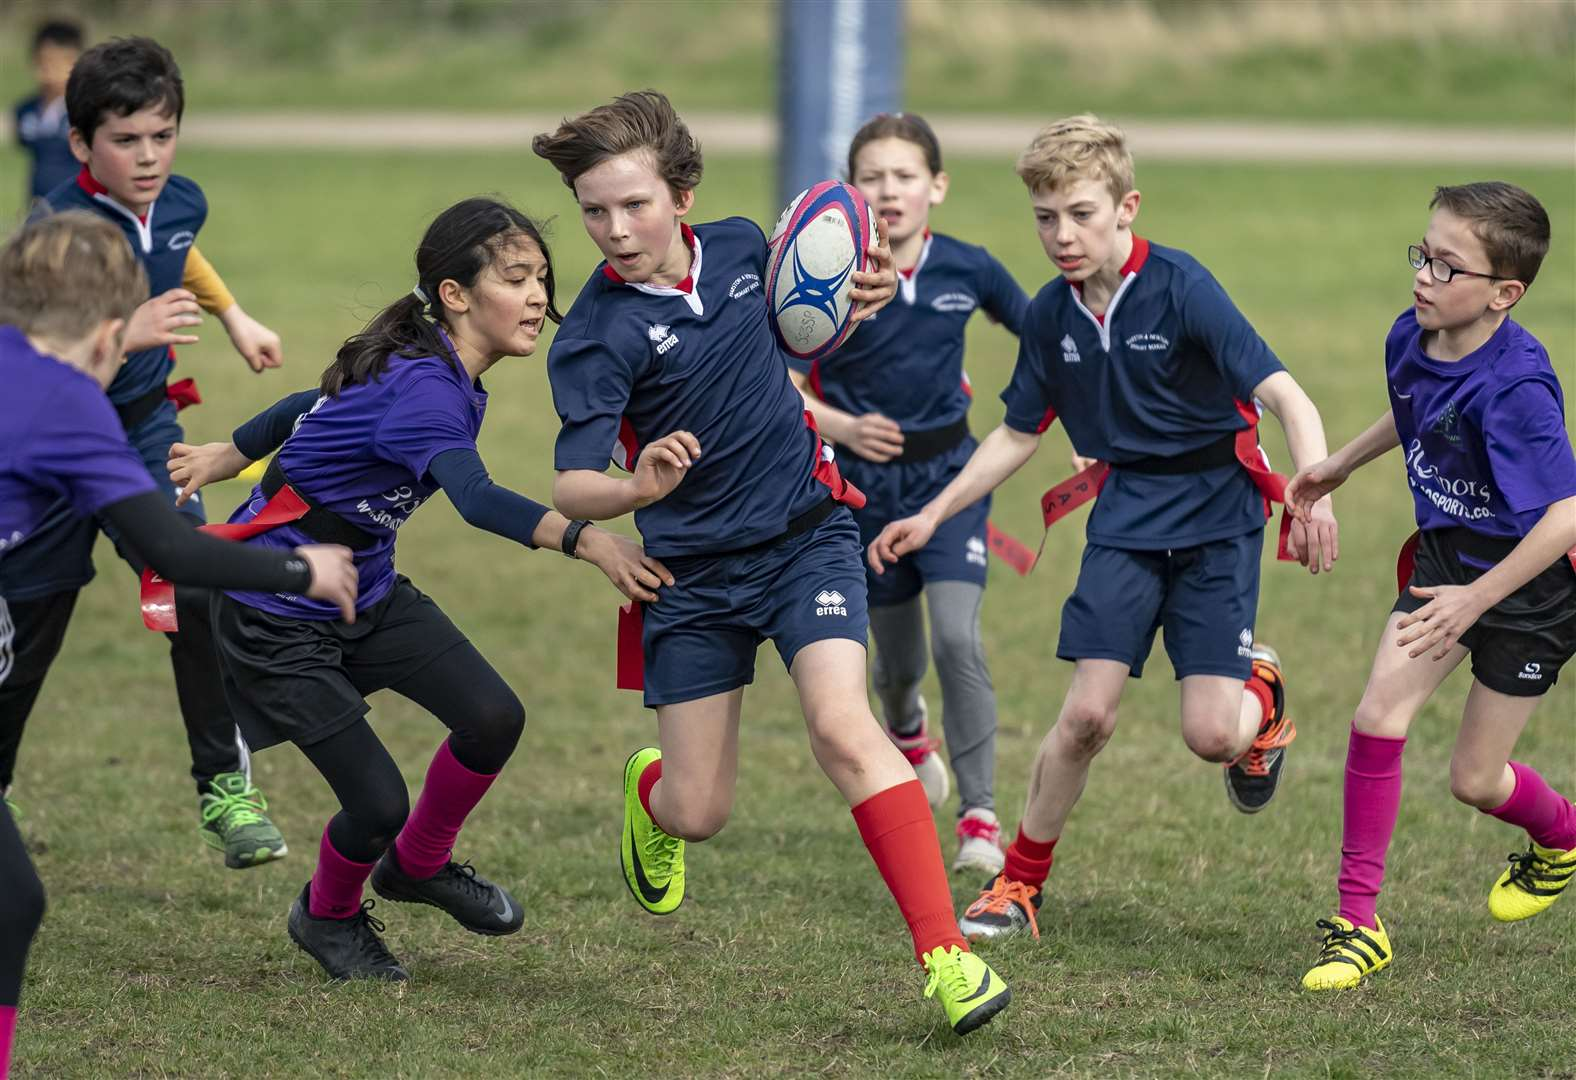 Tag team spirit on show at Cambridge at the South Cambs School Sports Partnership rugby festival